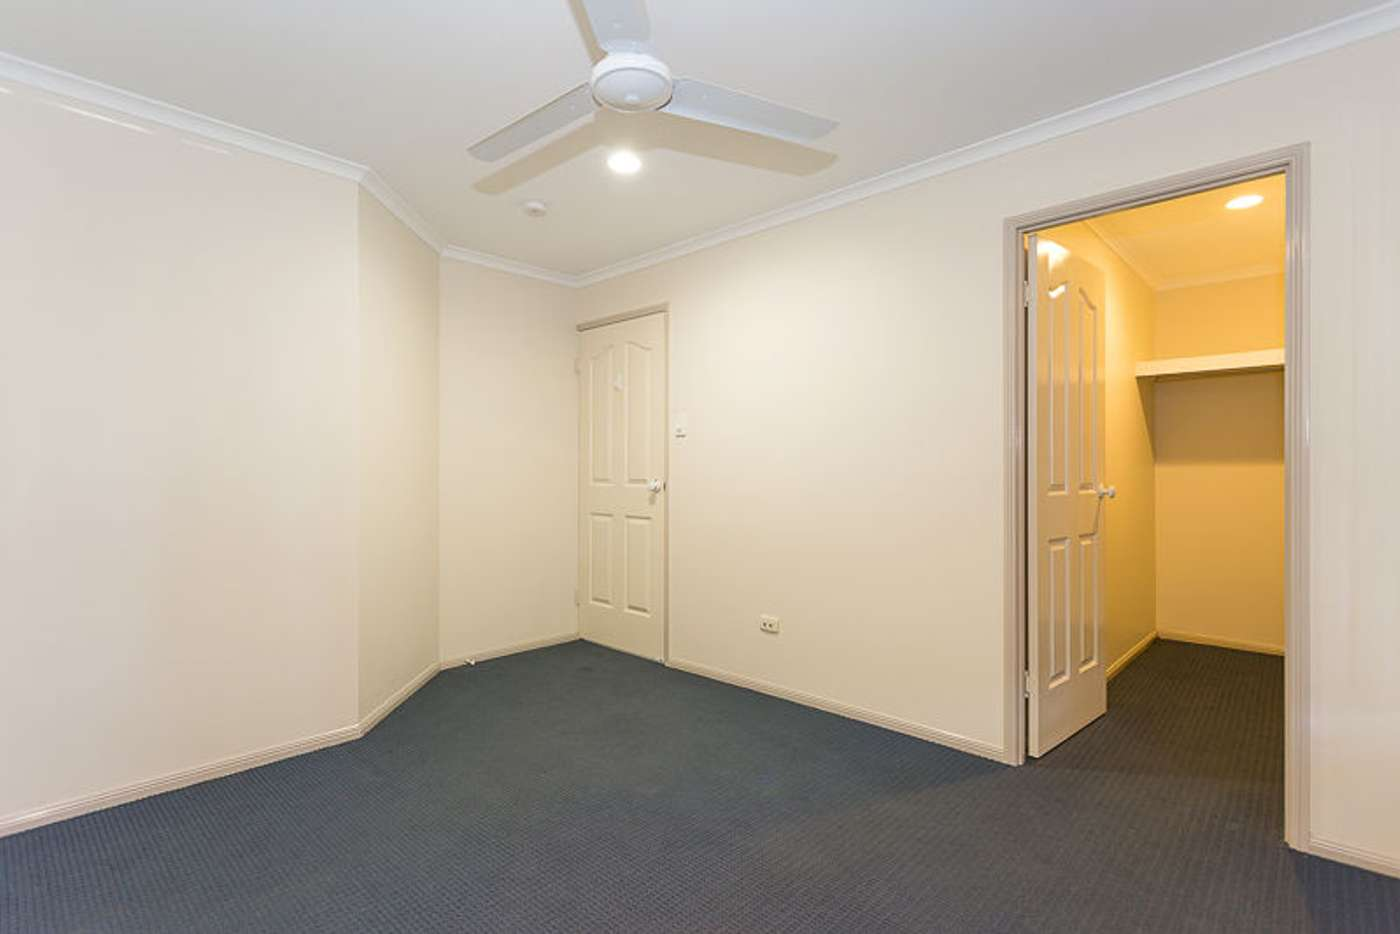 Sixth view of Homely house listing, 19 Waratah Street, Beaconsfield QLD 4740